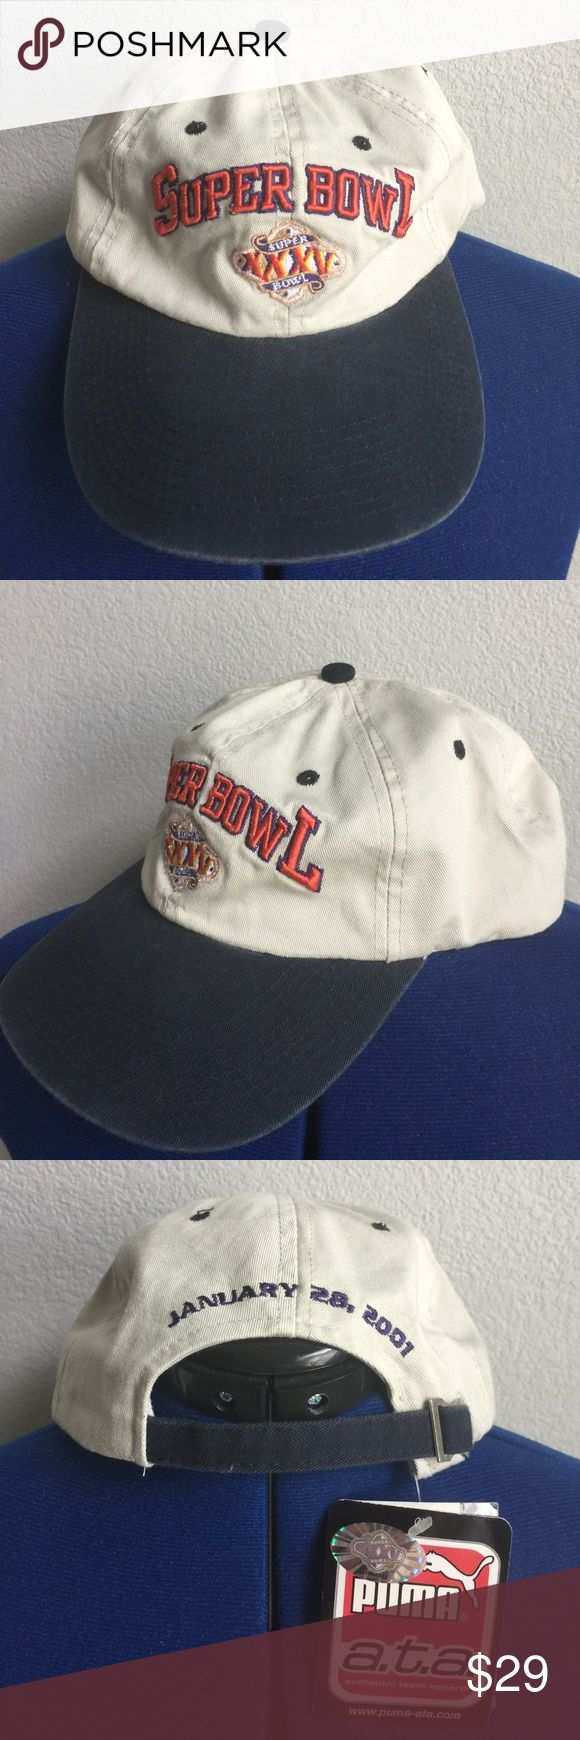 NFL Football Super Bowl Strapback SnapBack Hat 90s NFL Football Super Bowl XXXV Puma Strapback SnapBack Hat 90s | Size: OS | Condition: New with tags (Vintage condition) Puma Accessories Hats